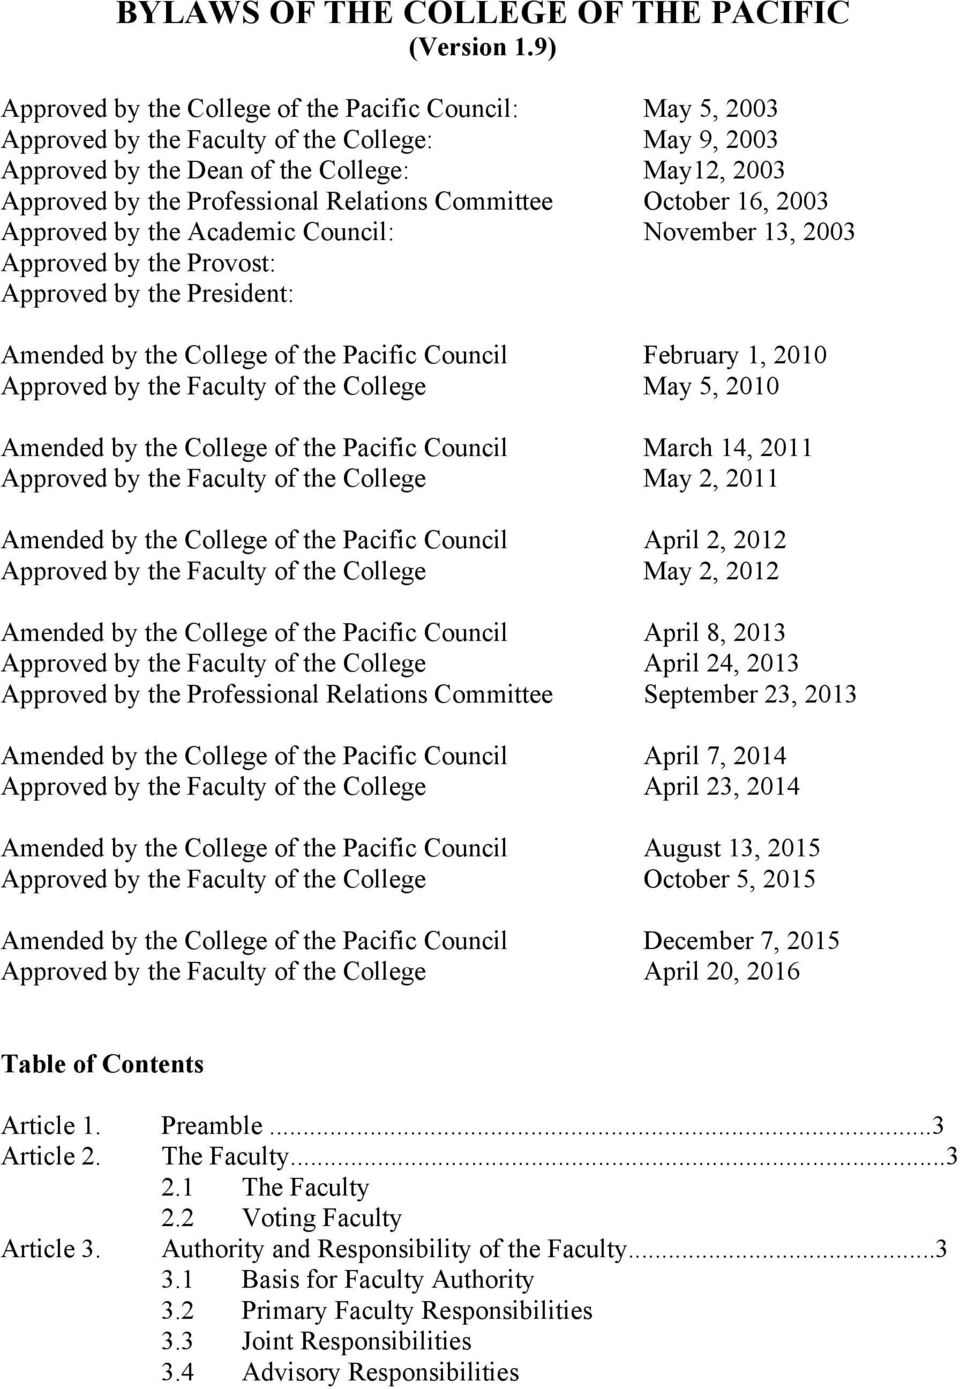 Relations Committee October 16, 2003 Approved by the Academic Council: November 13, 2003 Approved by the Provost: Approved by the President: Amended by the College of the Pacific Council February 1,